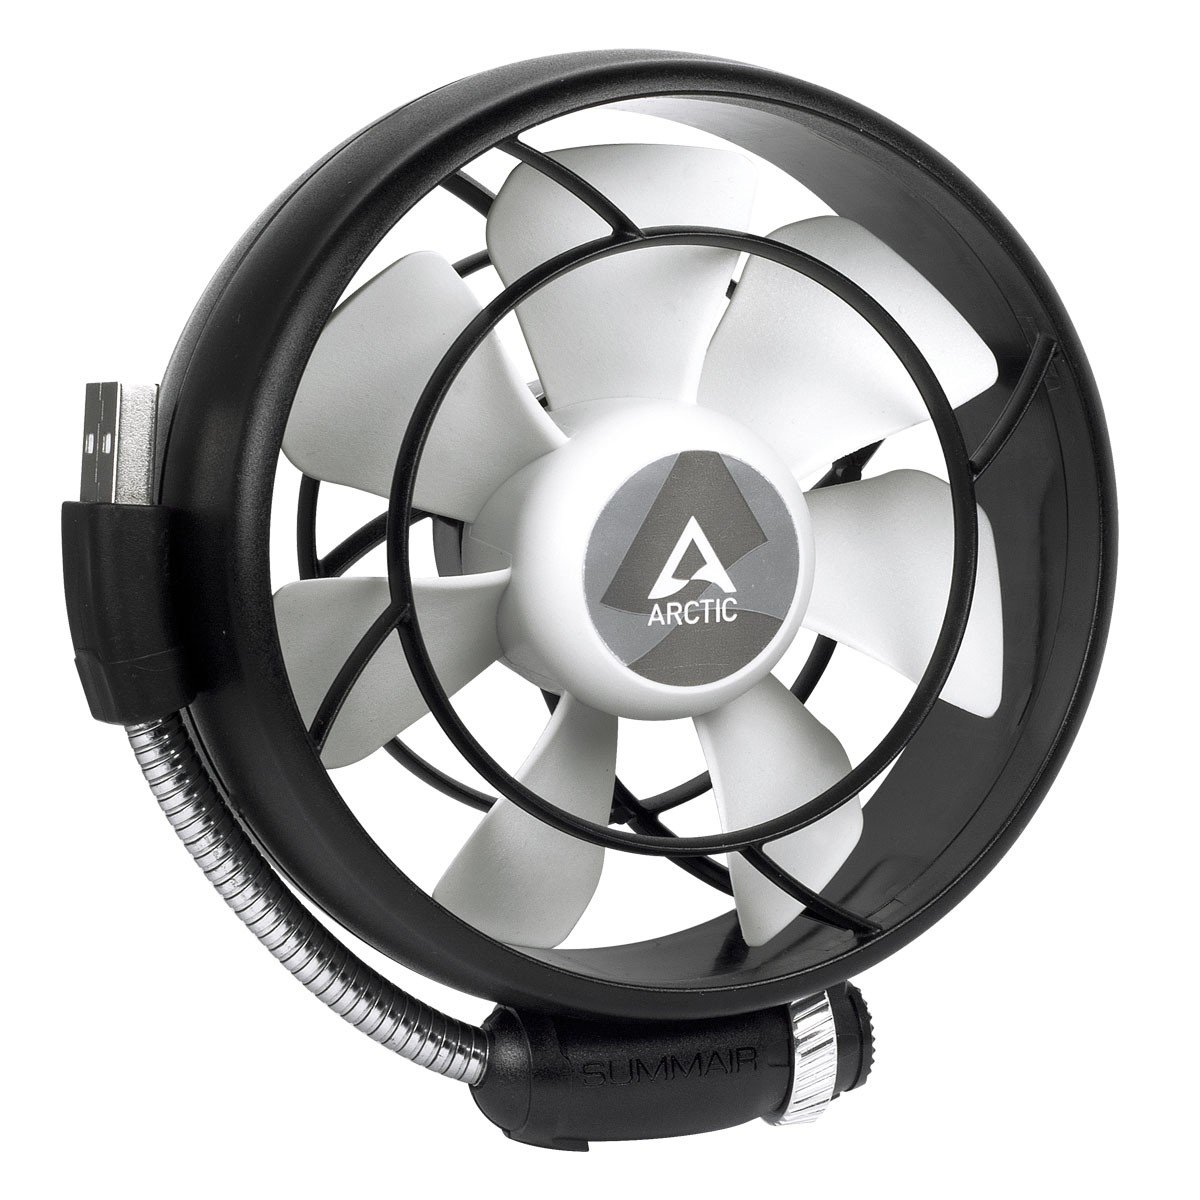 ARCTIC Summair Light - Portable USB Fan for Office I Desktop Fan Cooler for Computer, Laptop, Macbook I Silent Fan - Black